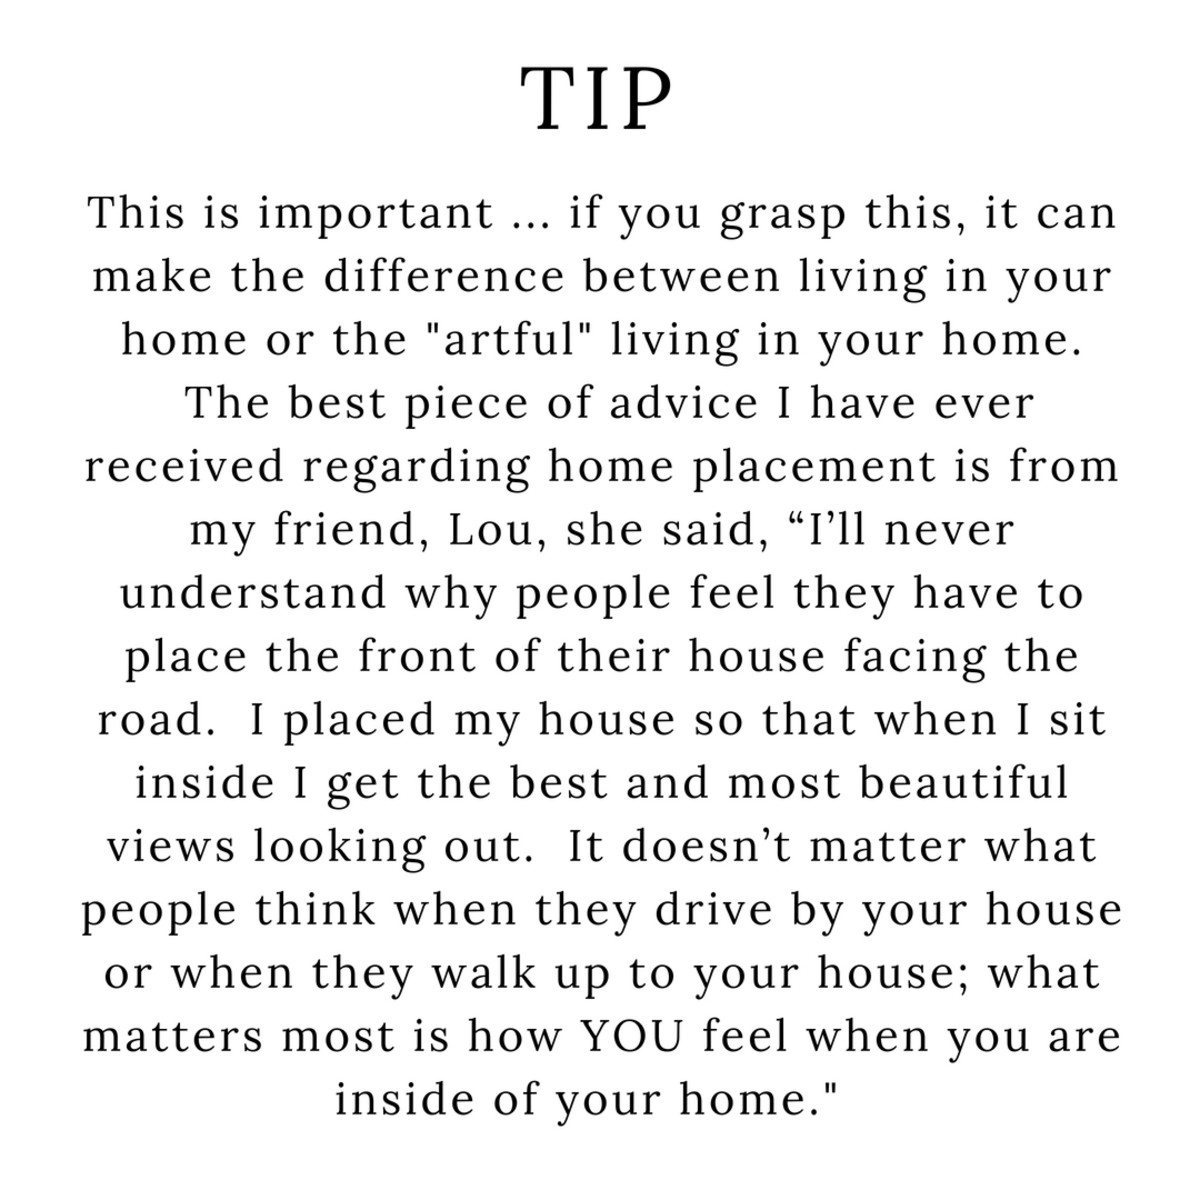 A building tip for artful living.